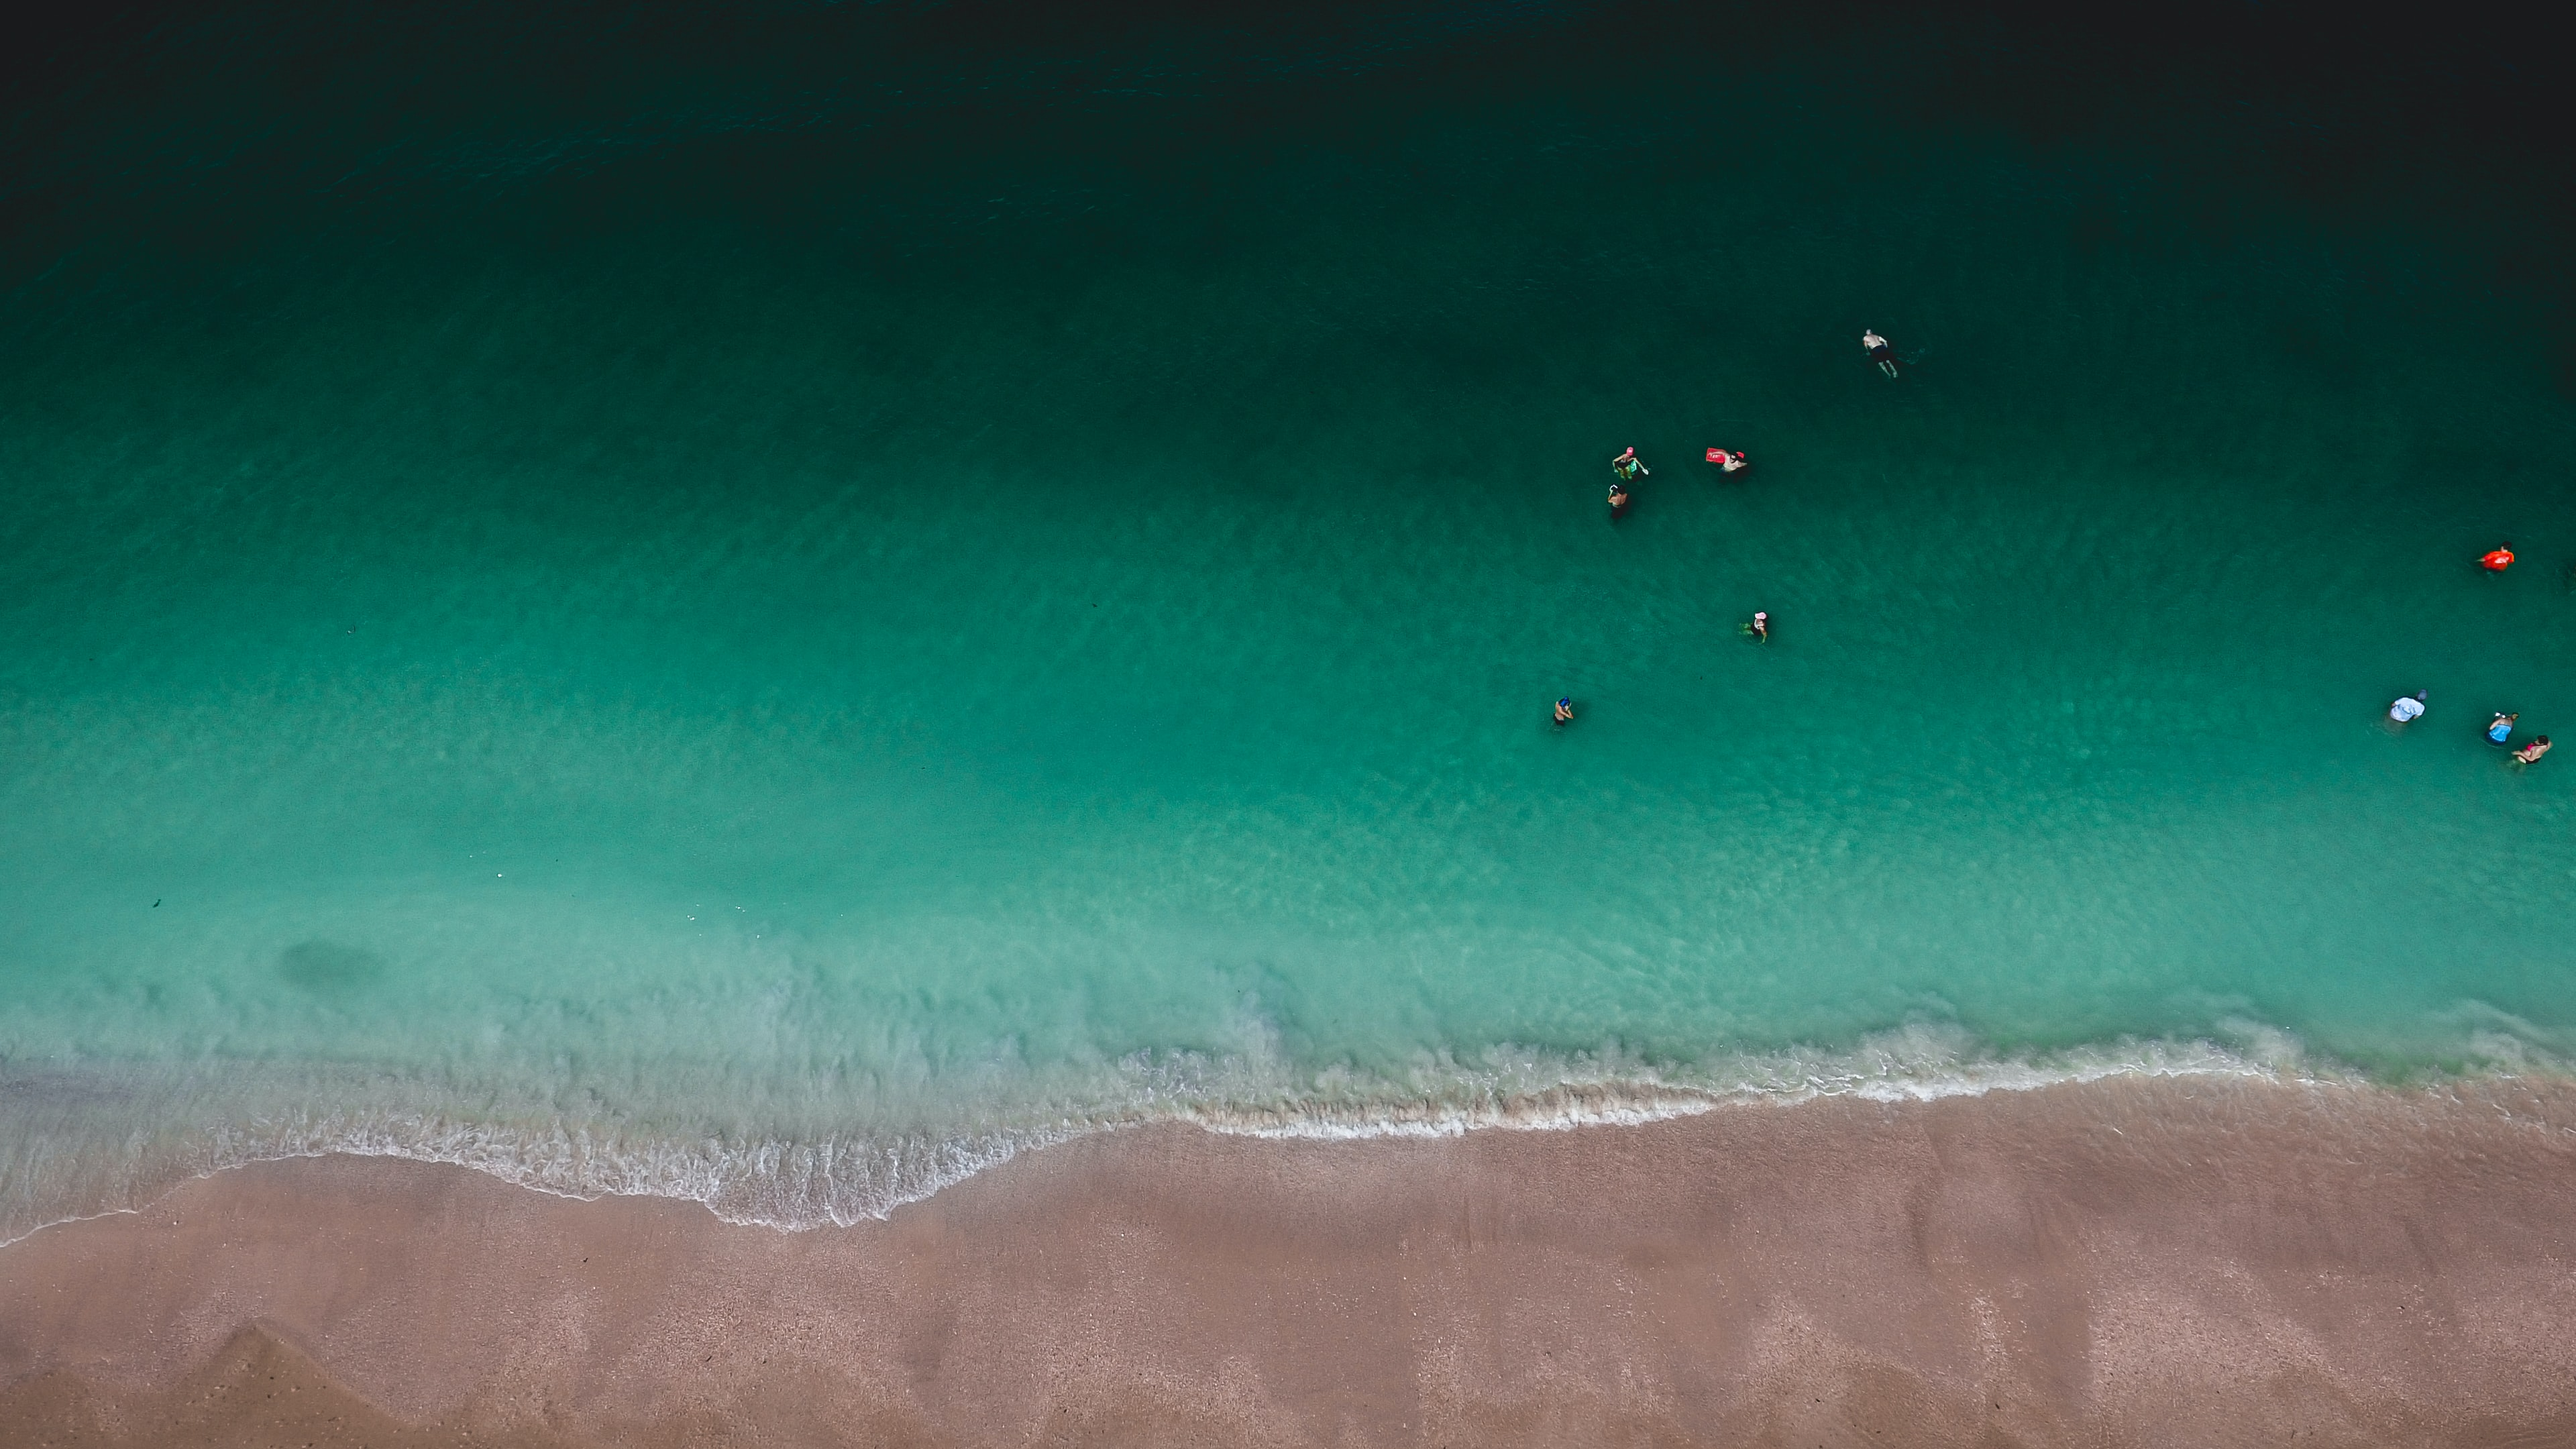 Drone view of the people in the ocean shallow water by the sandy beach at Tigertail Court